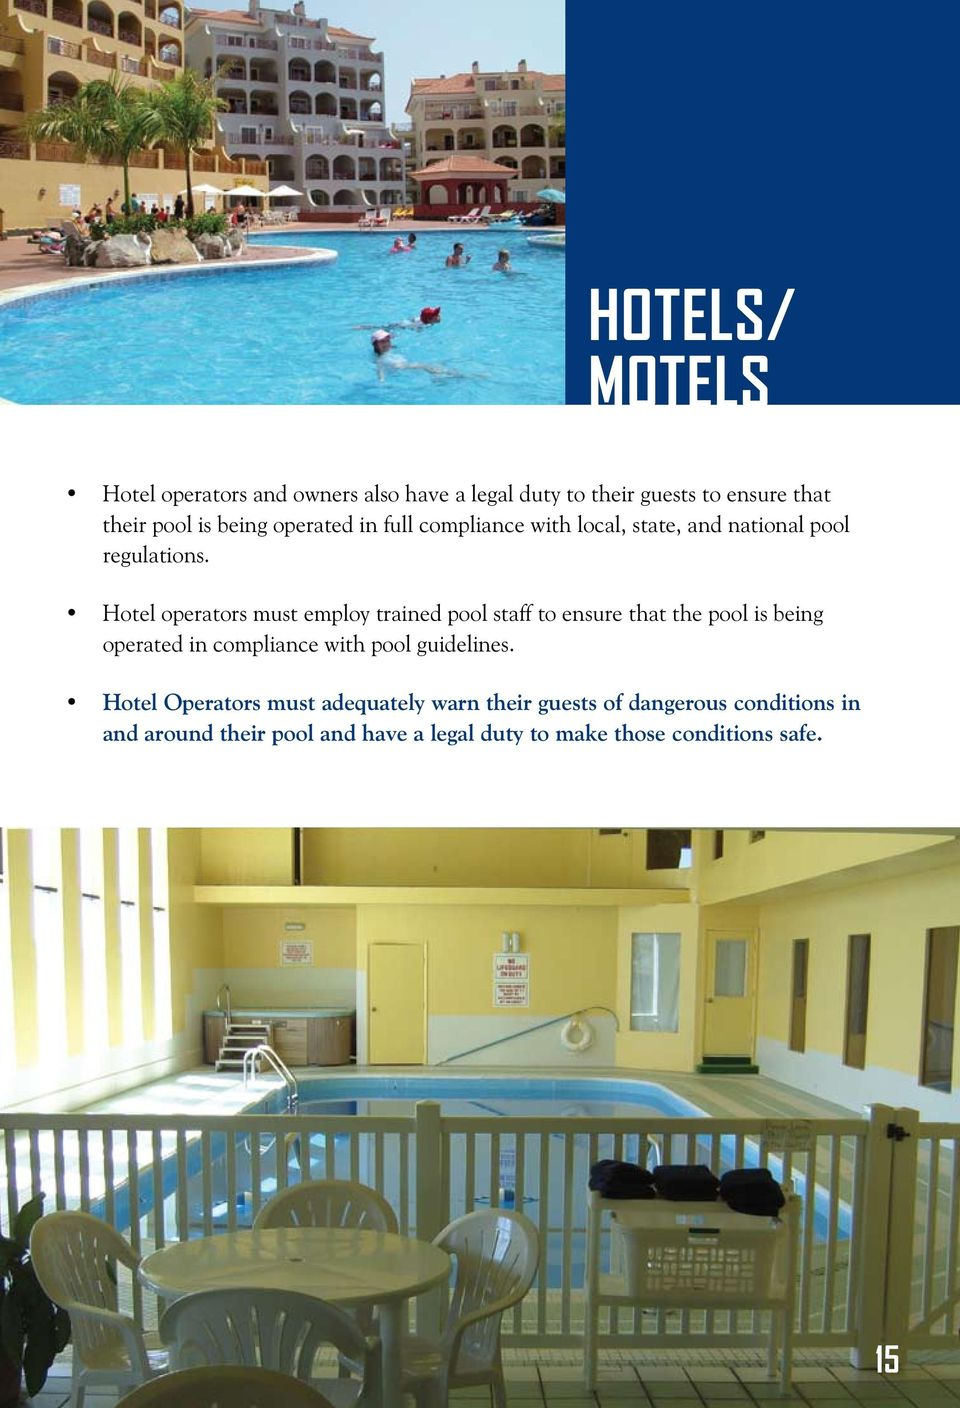 Hotel operators must employ trained pool staff to ensure that the pool is being operated in compliance with pool